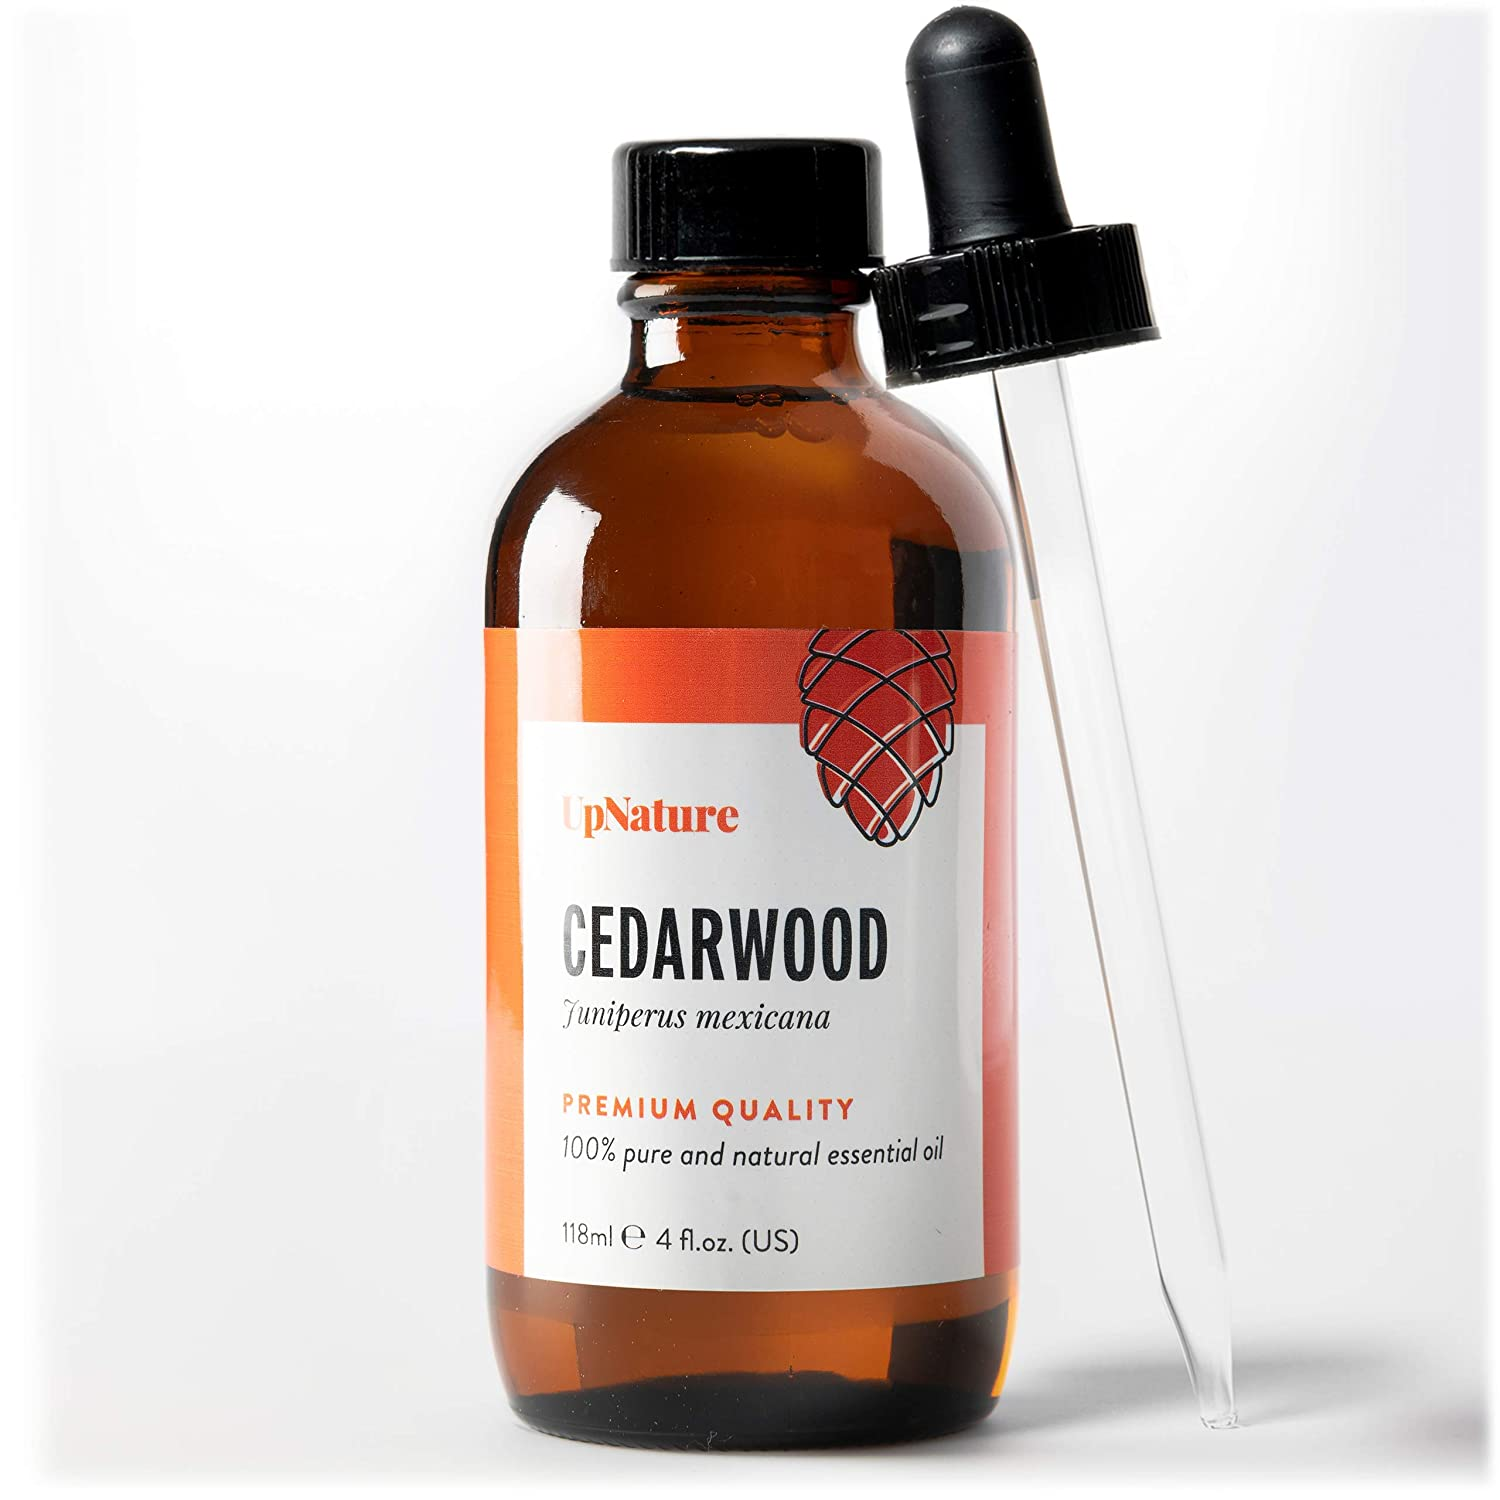 Cedarwood Essential Oil 4 OZ - For Hair Growth, Healthy Skin, Closets, Insects and Relaxing Sleep - 100% Pure & Natural Cedar Wood, Undiluted & Unfiltered, Premium Quality With Glass Dropper